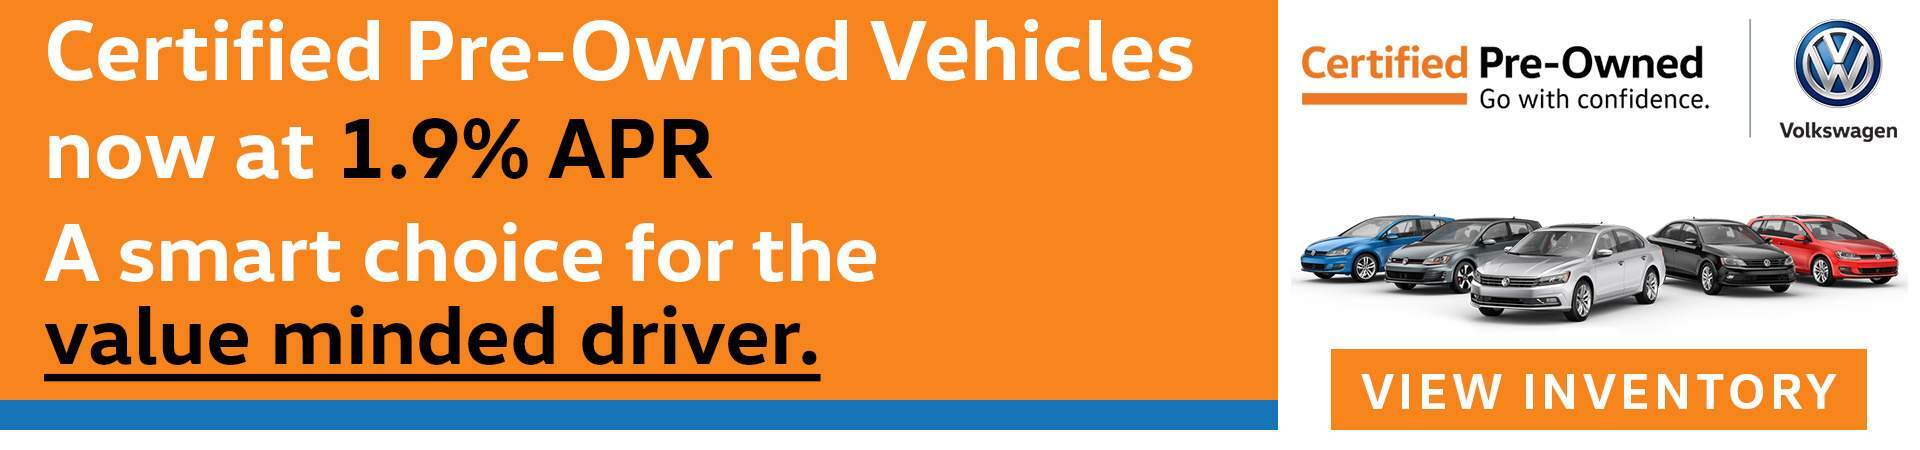 Certified Pre-Owned Vehicles at 1.9% APR